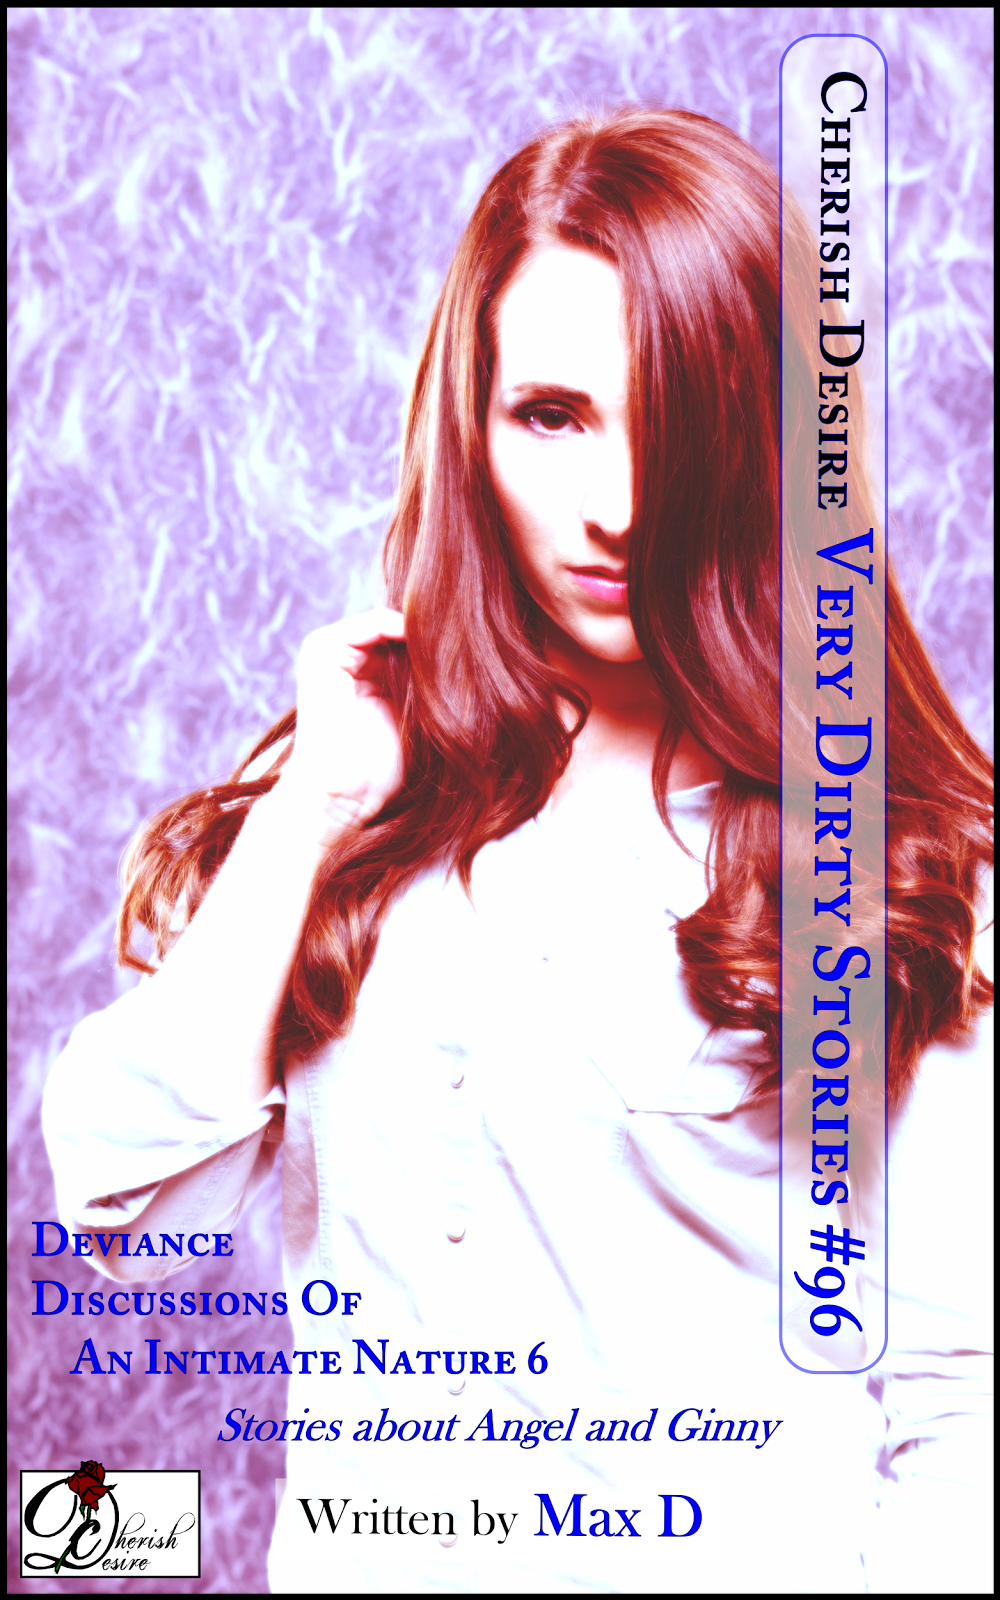 Cherish Desire: Very Dirty Stories #96, Max D, erotica